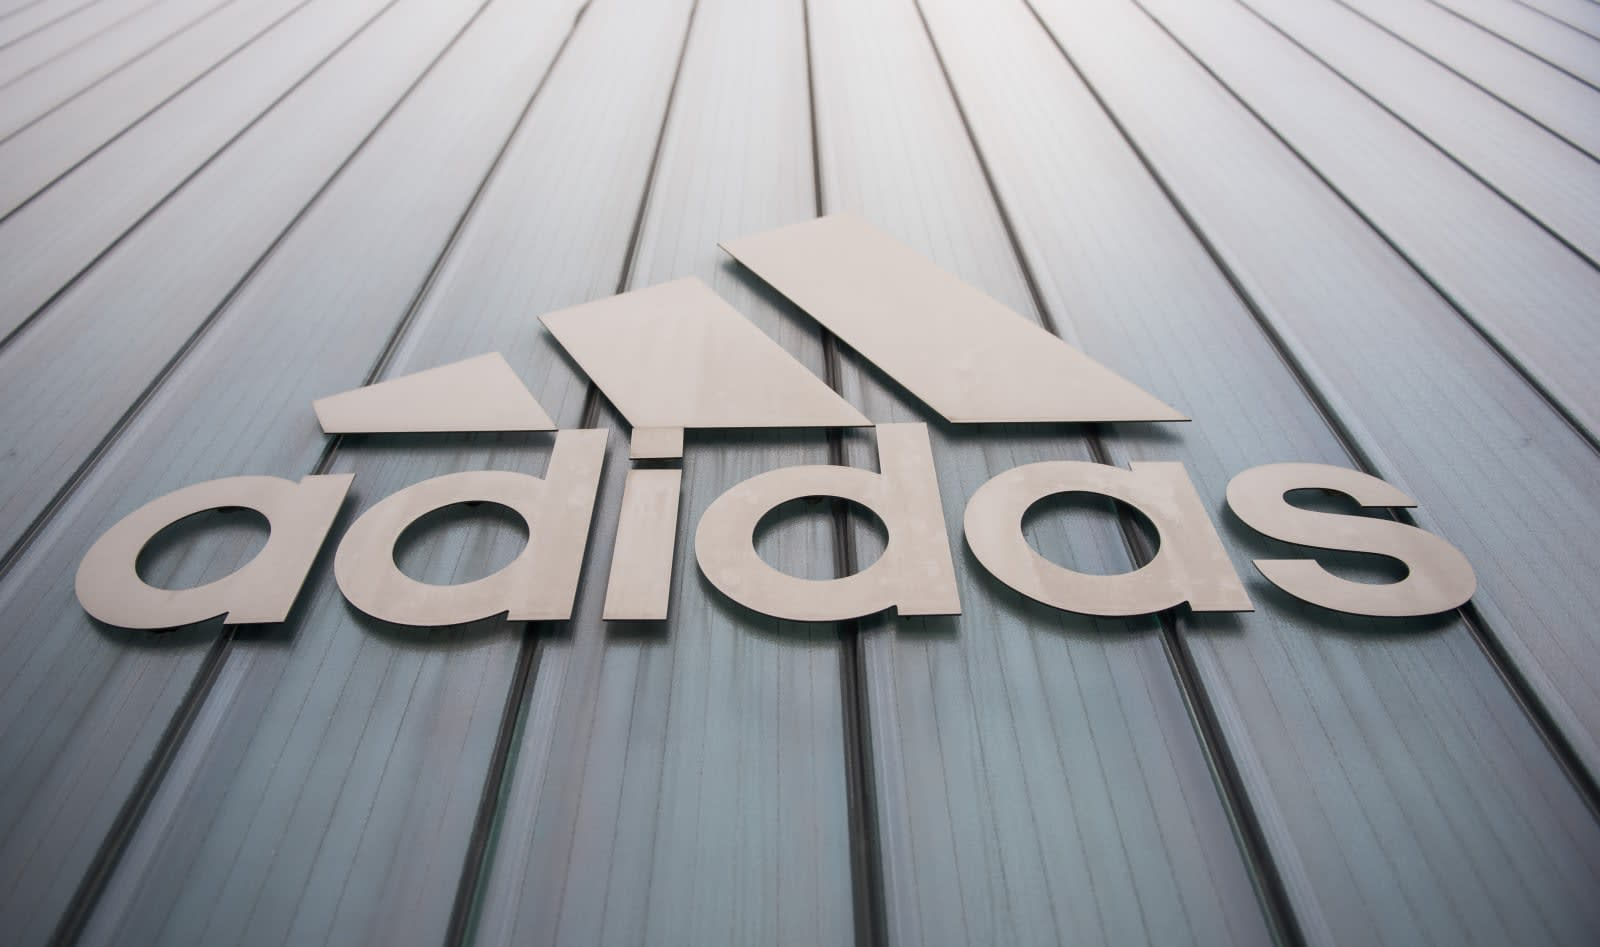 Adidas warns US customers about a possible data breach